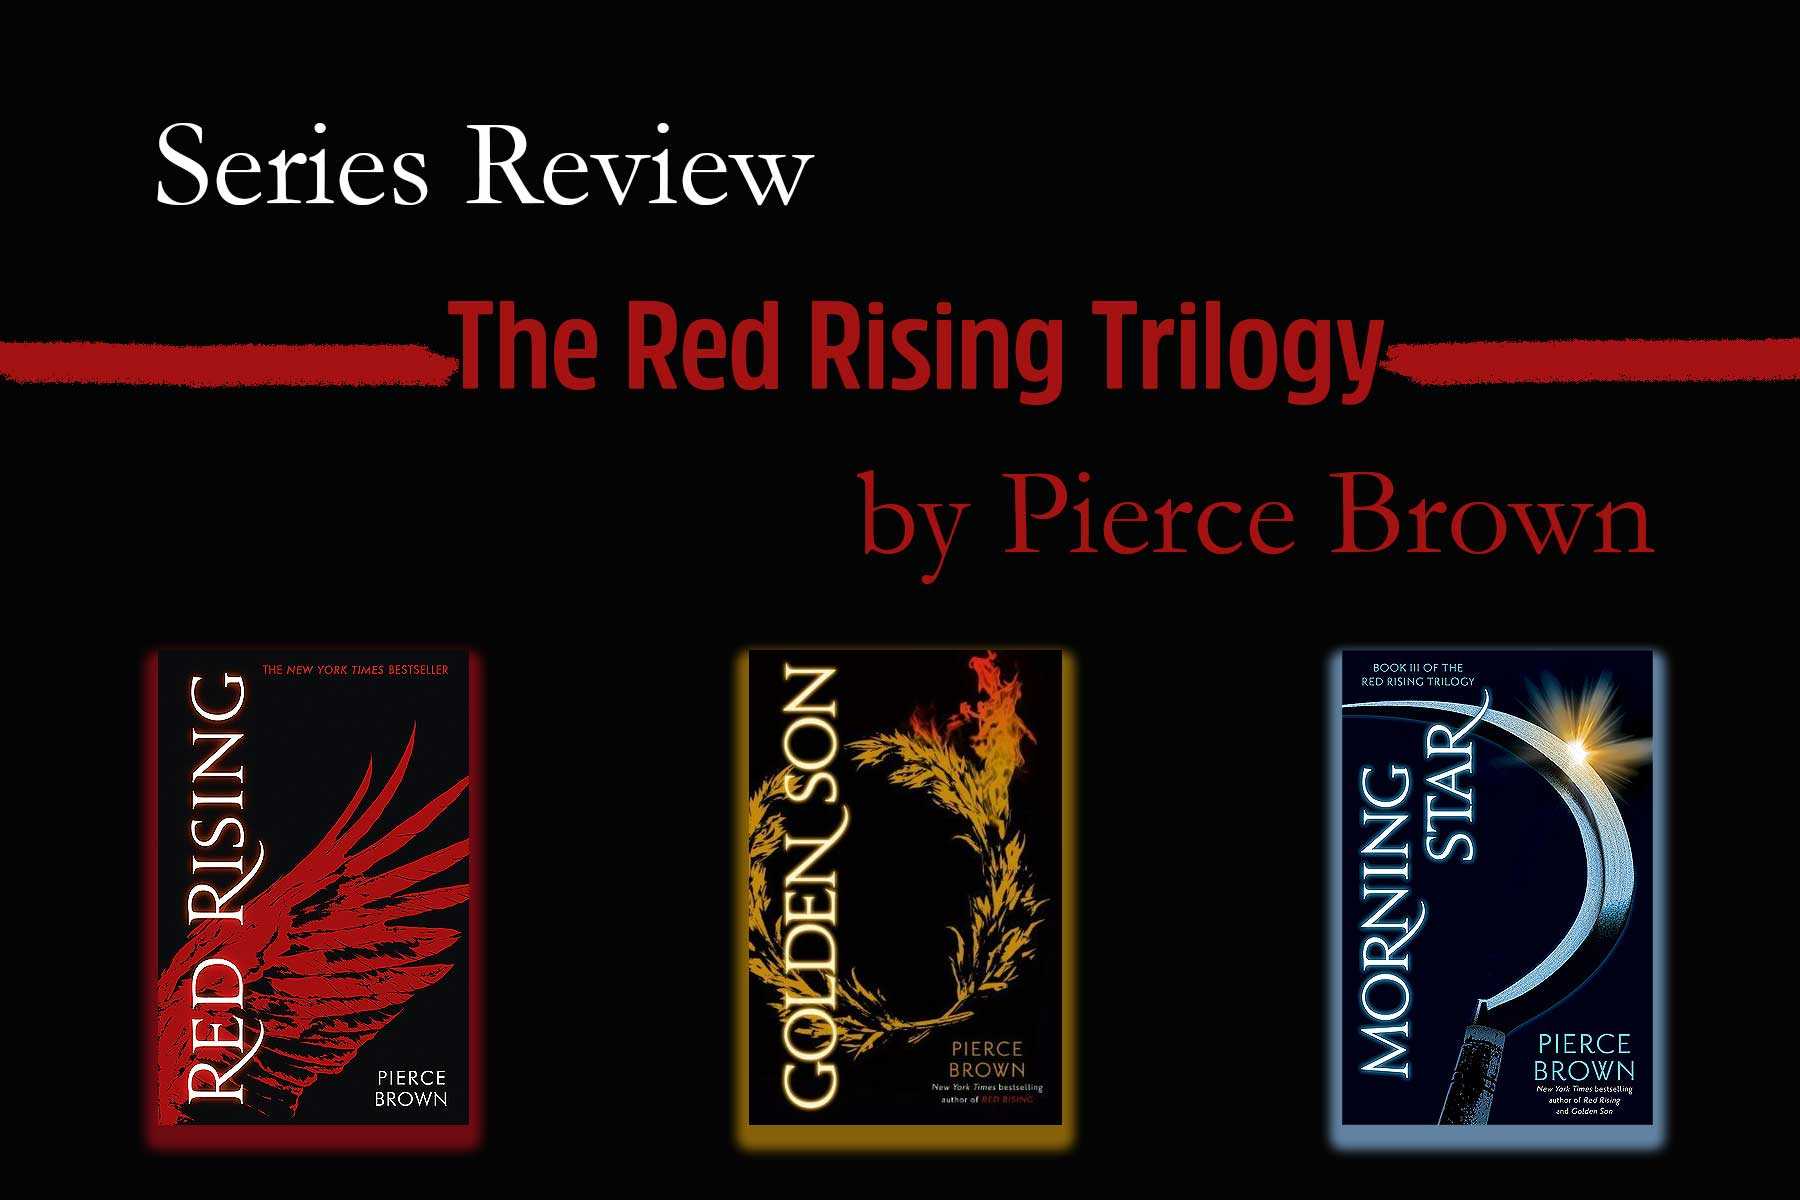 Series Review: The Red Rising Trilogy by Pierce Brown (Red